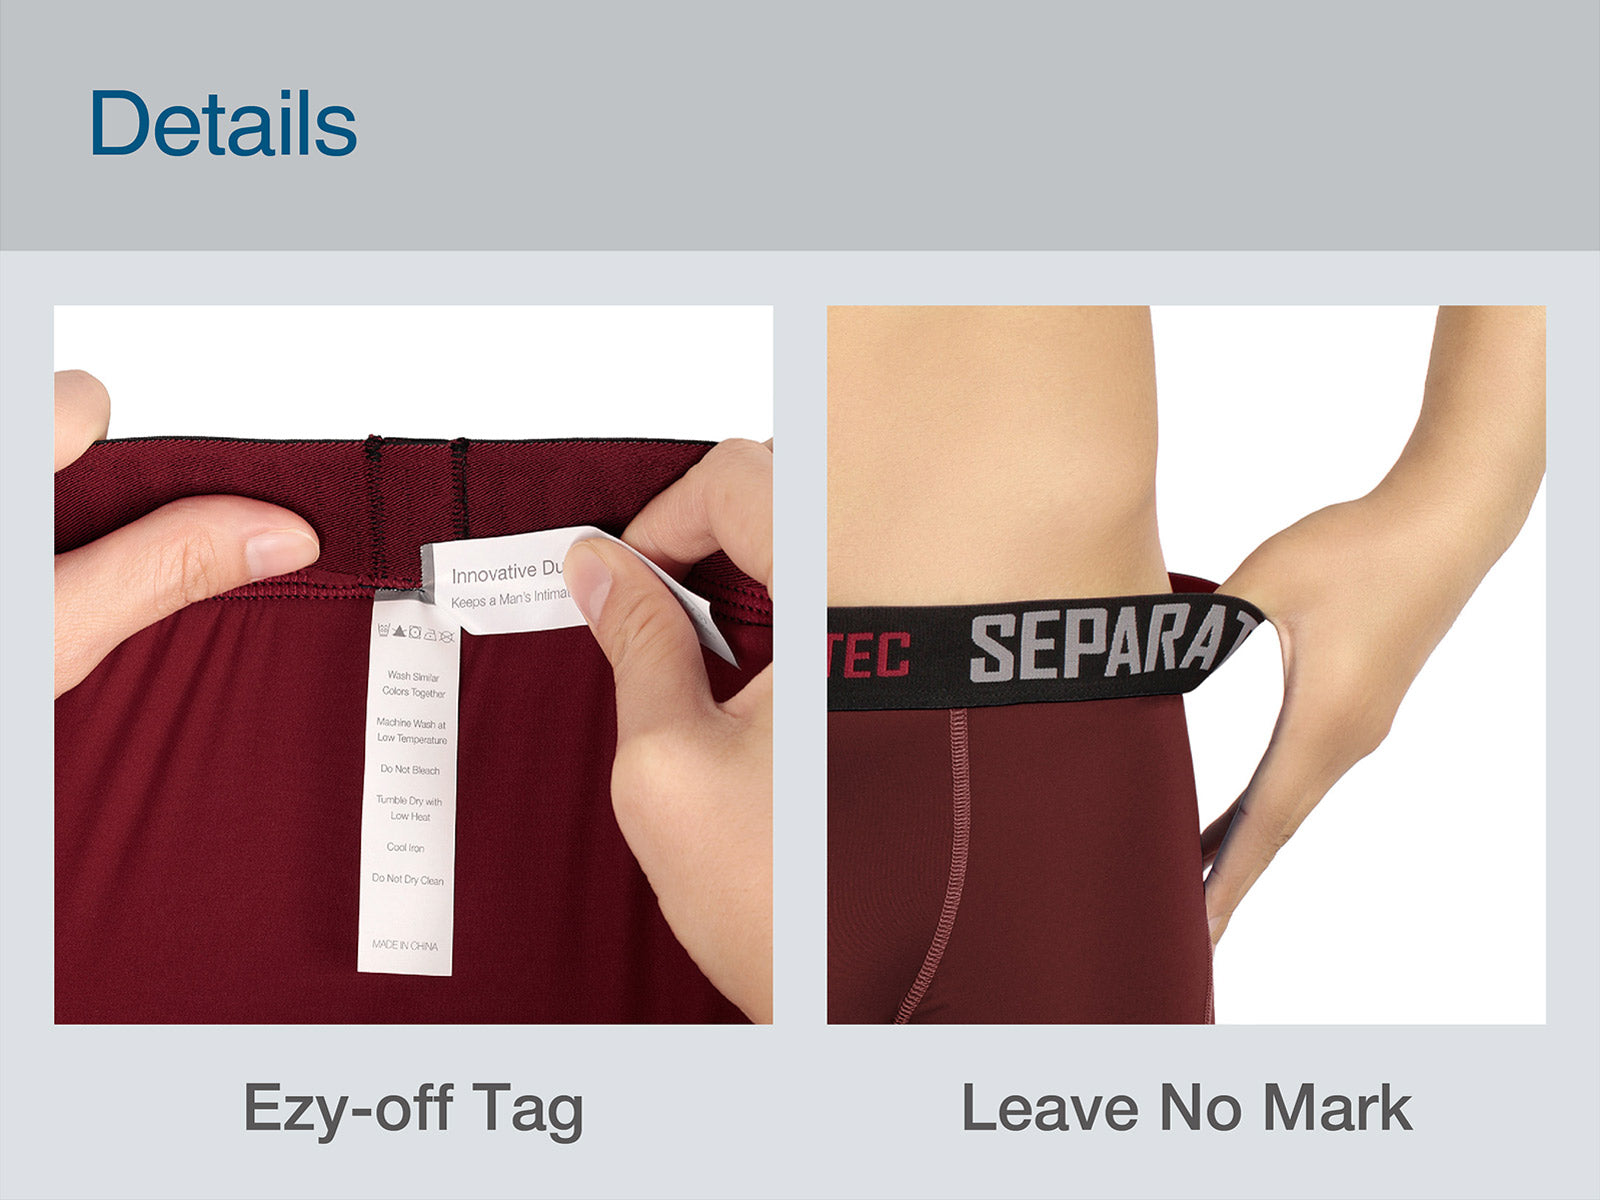 Separatec 2 Pouch underwear, Innovative Daul Pouch Patent Technology, Ezy-off tag, leave no mark, won't roll up, comfortsoft